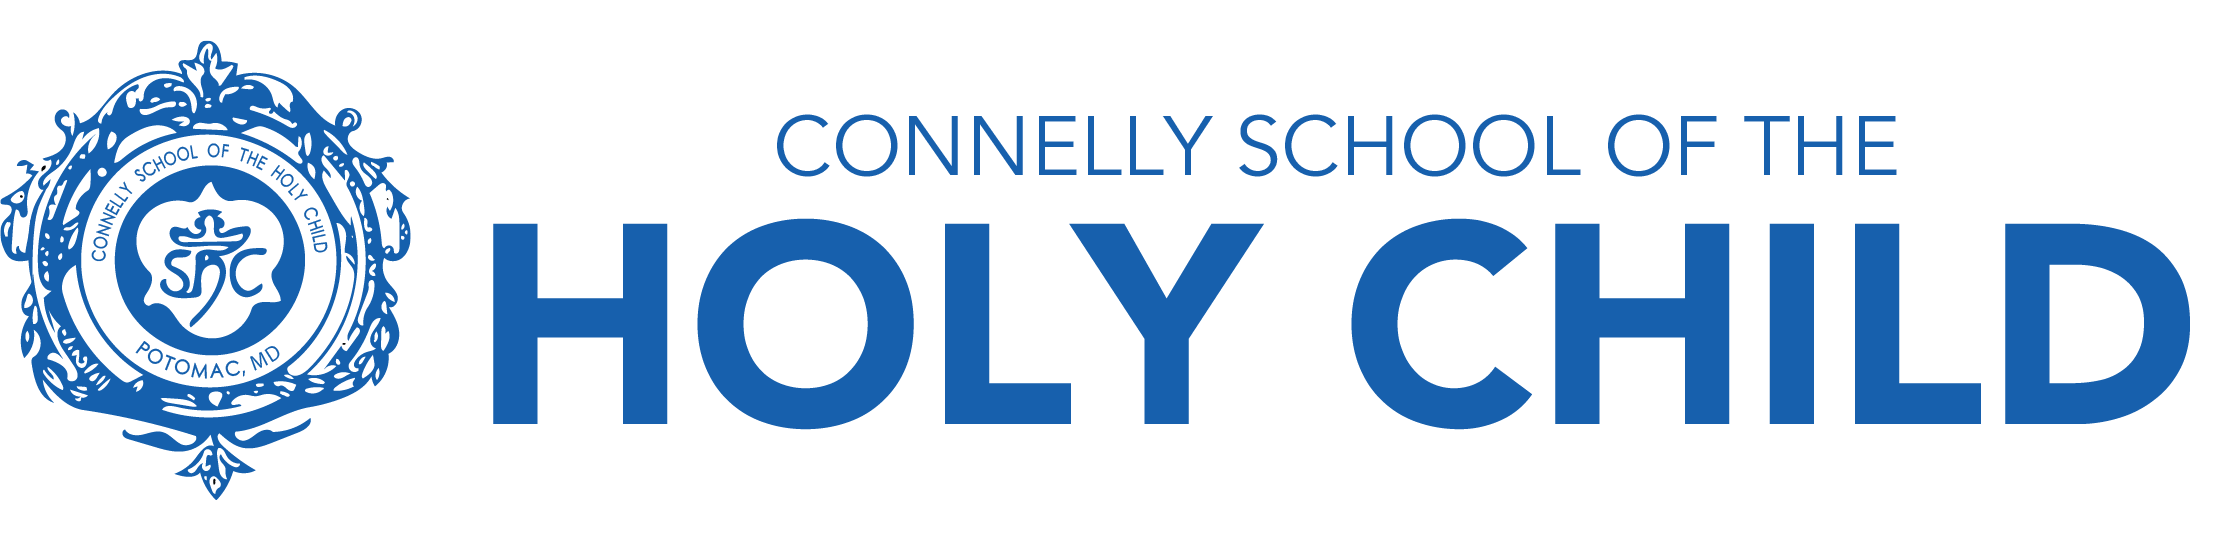 Connelly School of the Holy Child